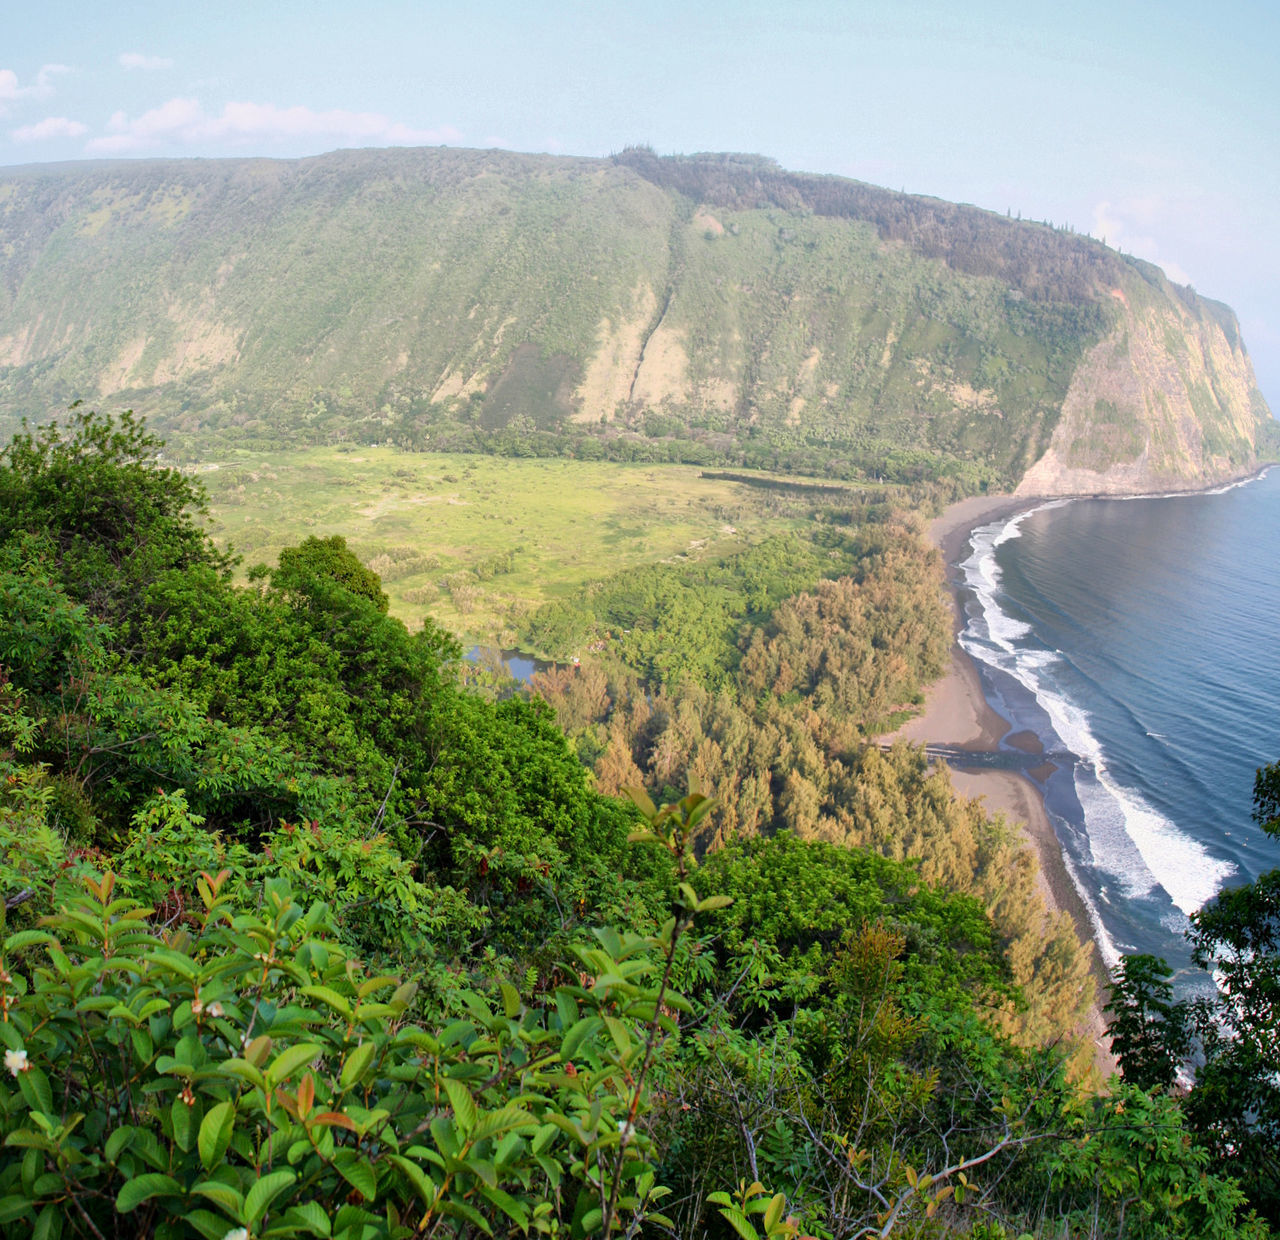 Waipi'o Valley Lookout Big Island Hawaii Agriculture Landscape Nature Rural Scene Green Color Tree Scenics Beauty In Nature Outdoors No People Tranquil Scene Hawaii Life Beauty In Nature Travel Tourism Hawaii USA Panoramic Hawaiian Style Tropical Climate Sea Horizon Over Water Beach